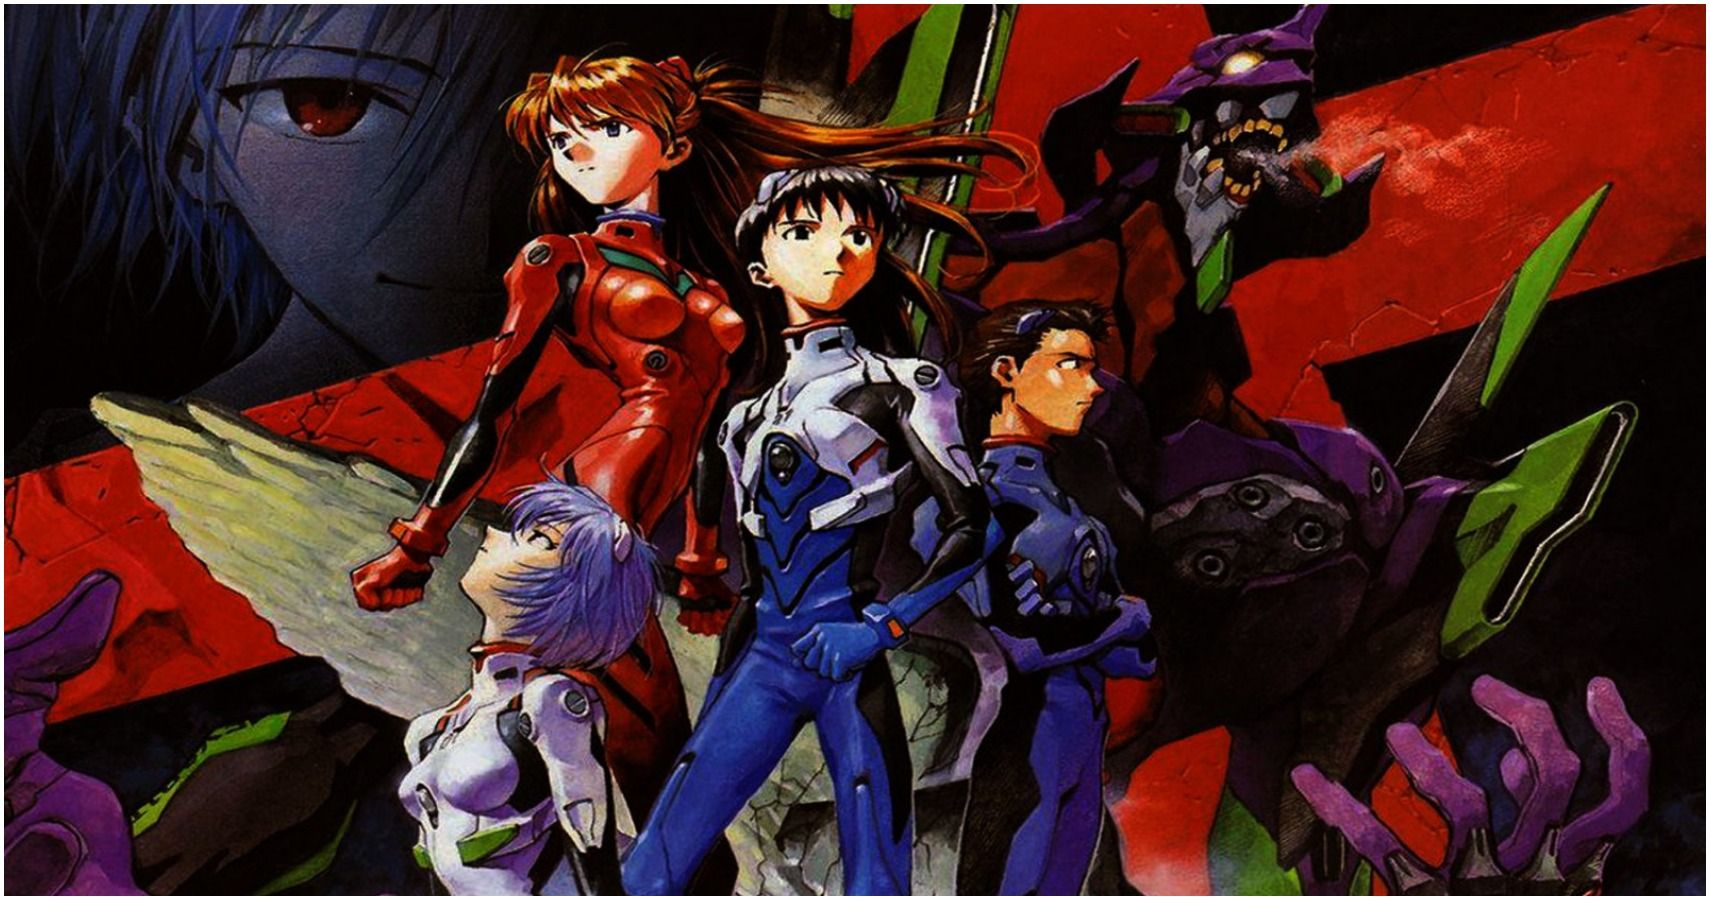 Neon Genesis Evangelion: 5 Ways The Anime Was Ahead Of Its Time (& 5 Ways It Wasn't)